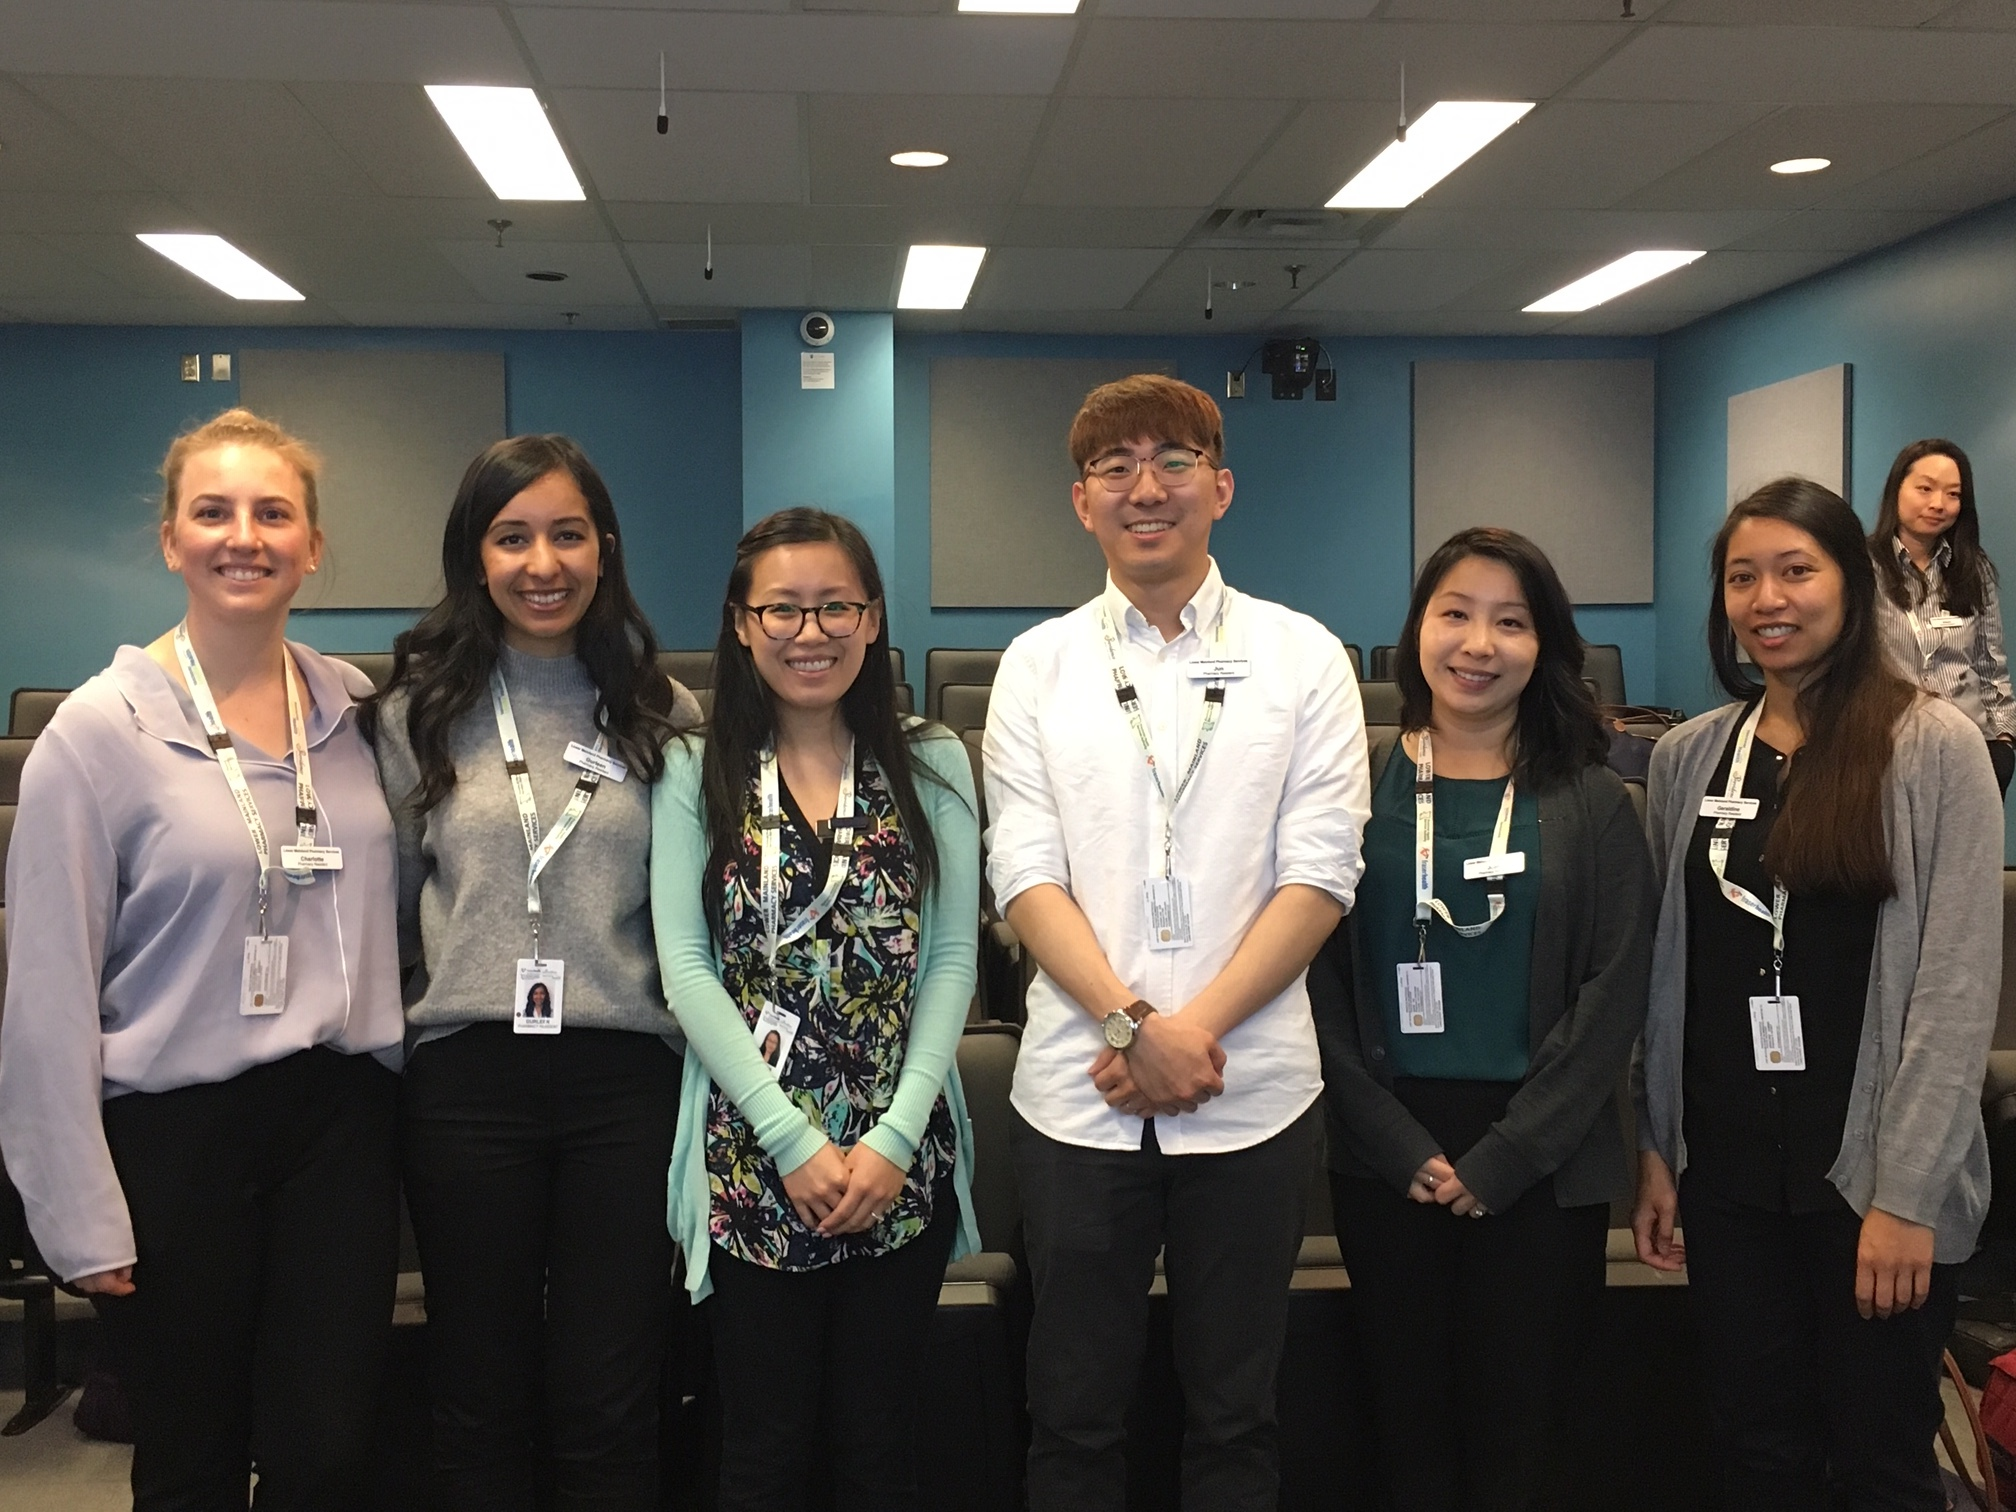 RCH/BH Pod (from left to right: Charlotte, Gurleen, Shi-Yuan, Jun, Joan and Geraldine)